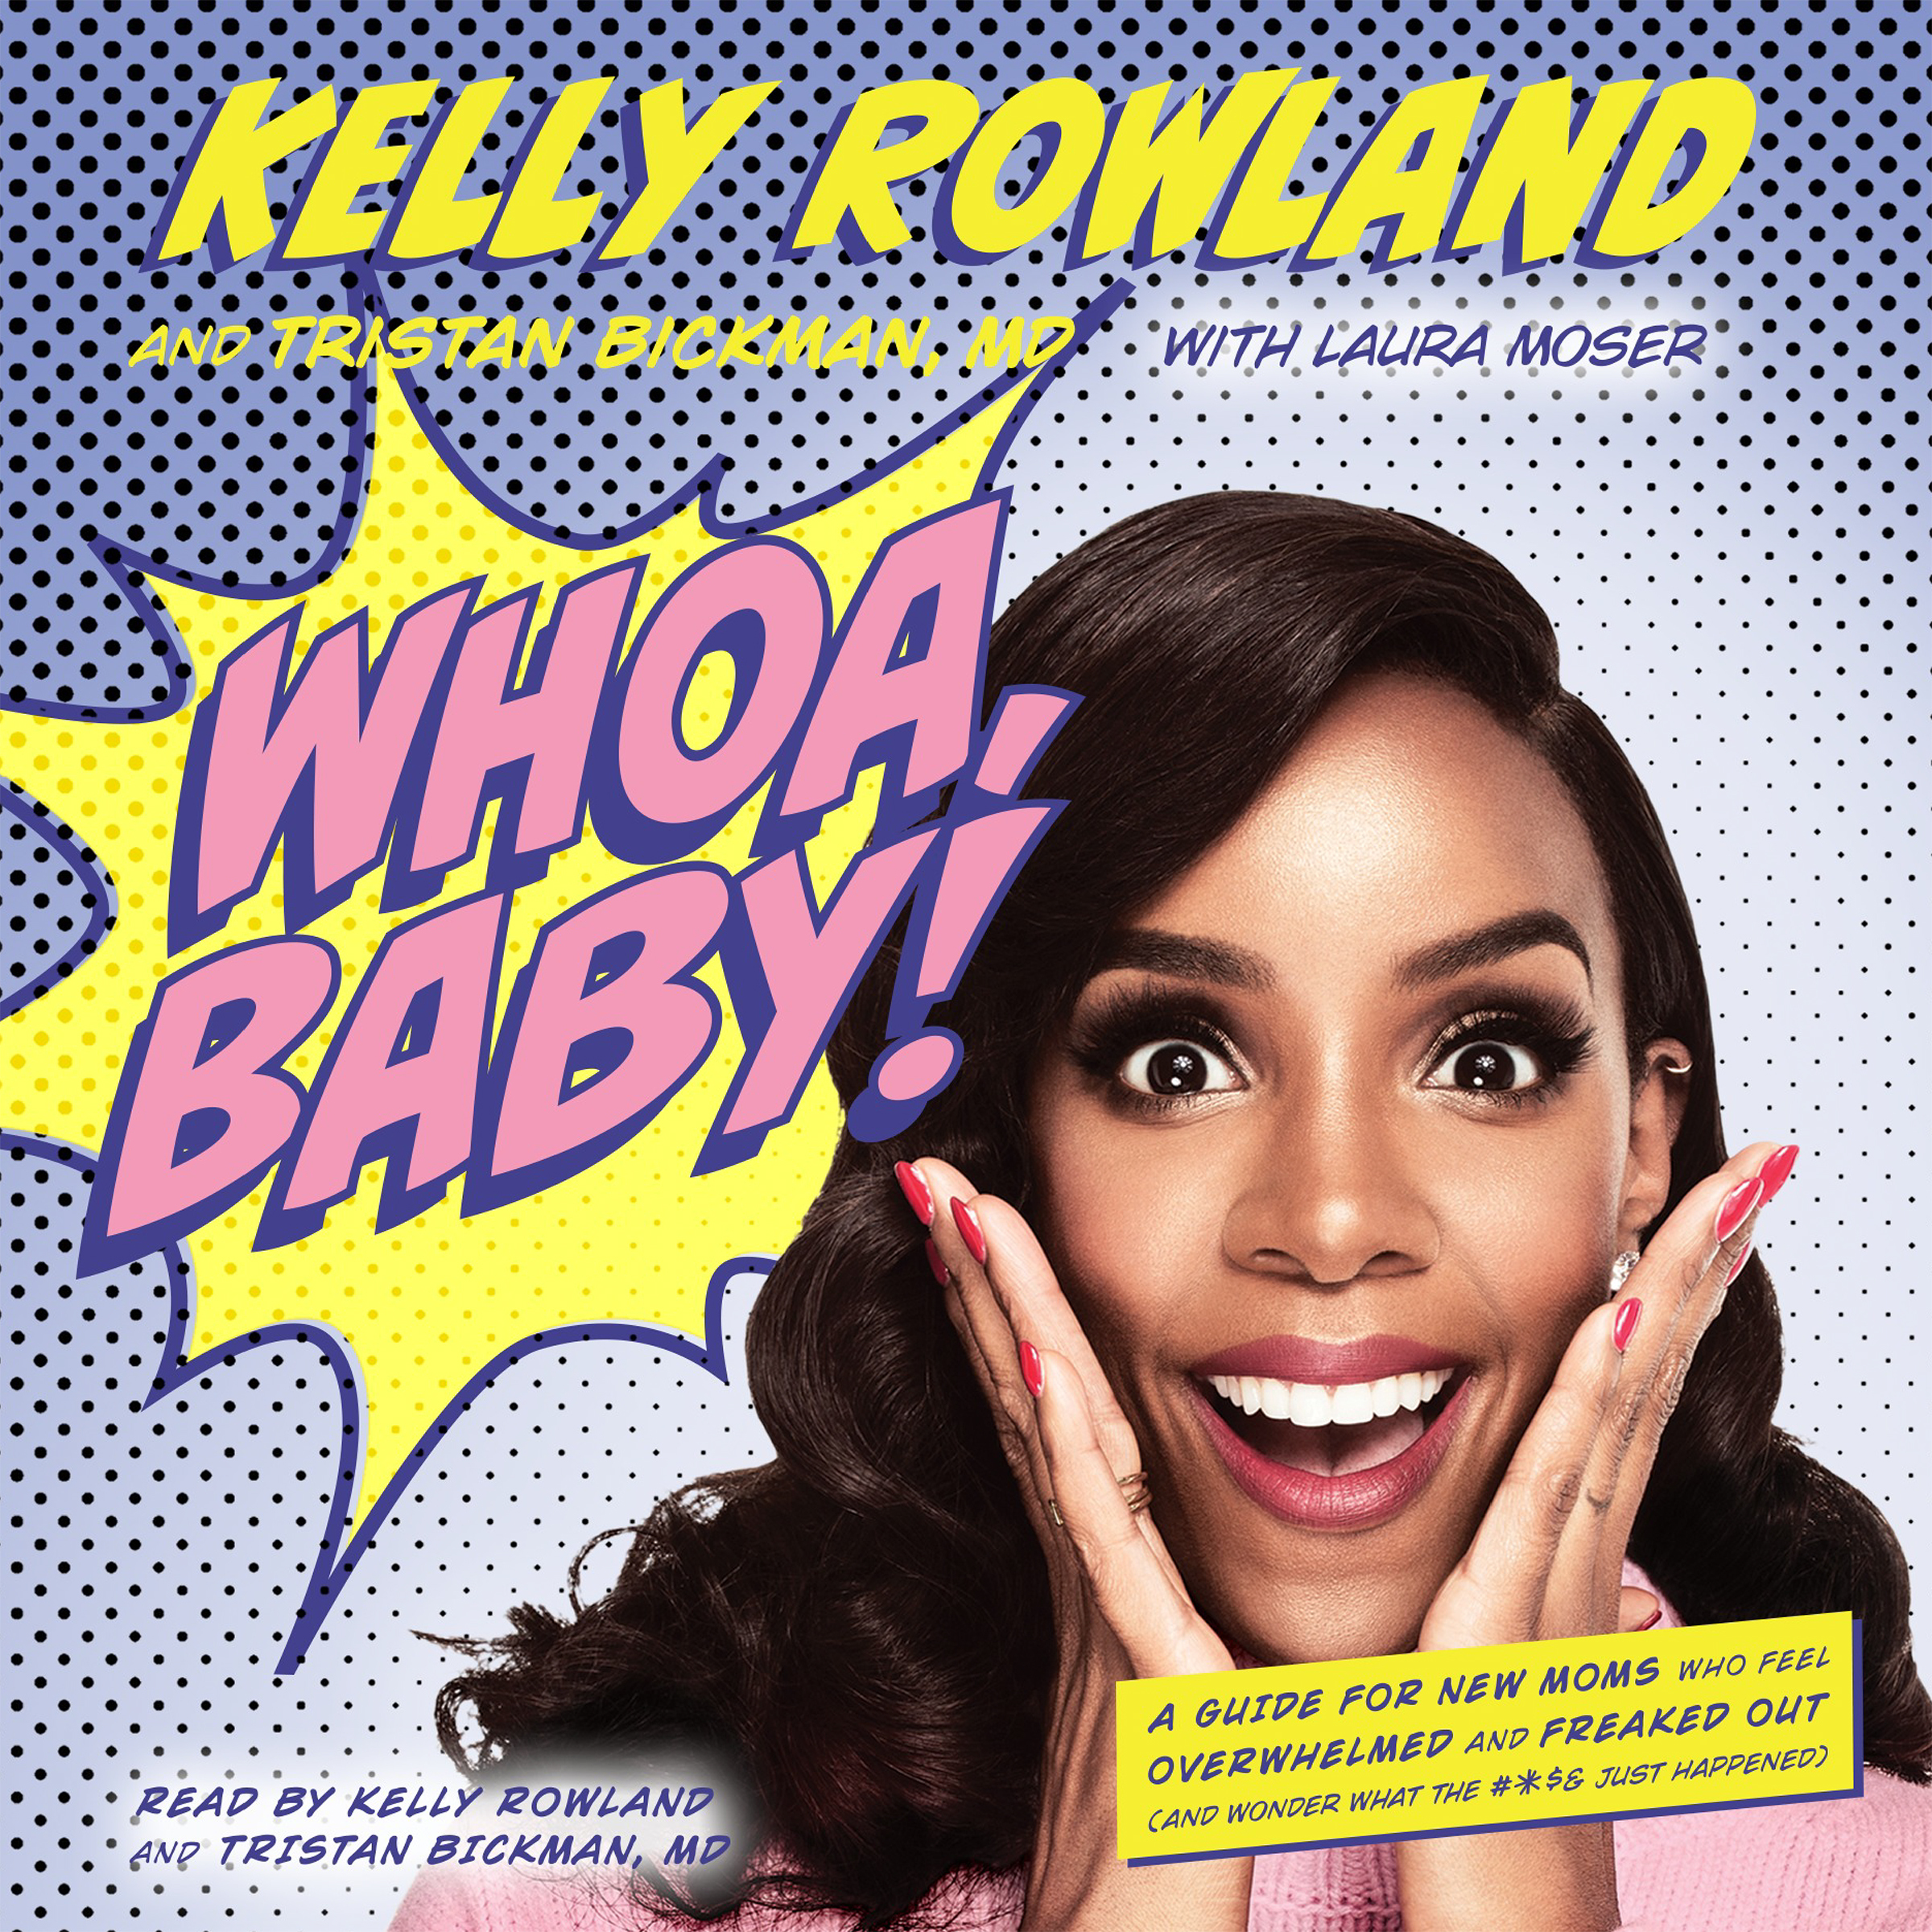 Printable Whoa, Baby!: A Guide for New Moms Who Feel Overwhelmed and Freaked Out (and Wonder What the #*$& Just Happened) Audiobook Cover Art